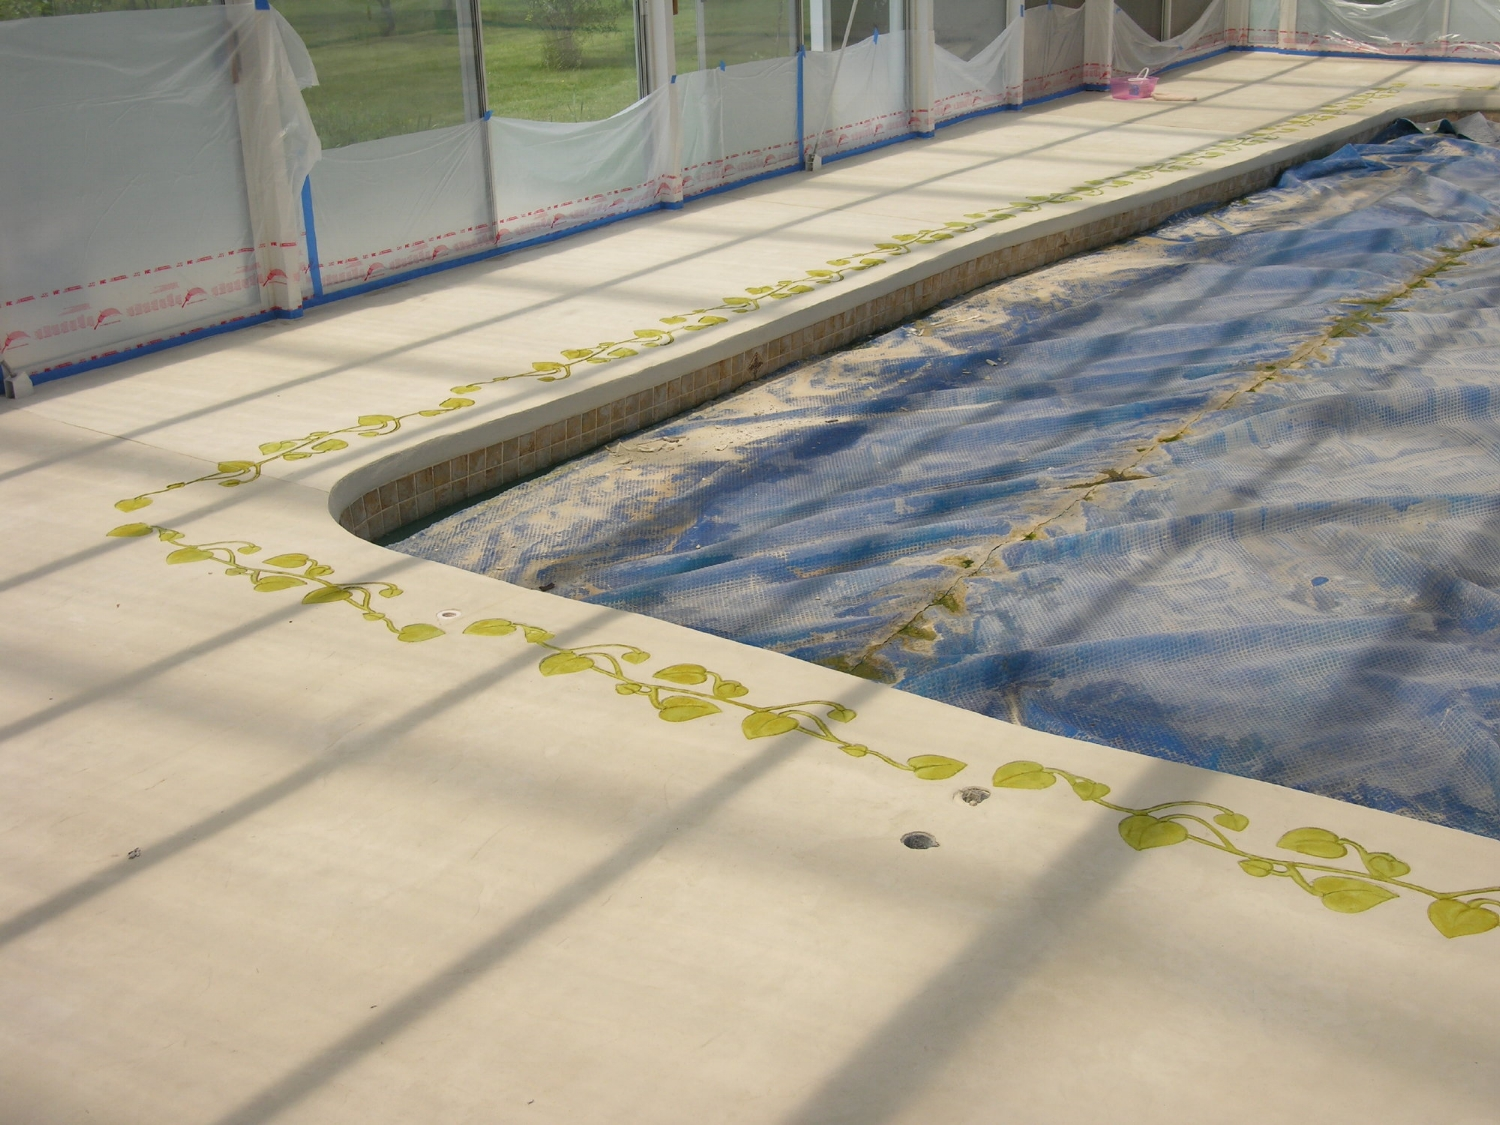 White Cement Overlay Of Indoor Concrete Pool Deck During Acid-Staining Of Decorative, Stamped Border